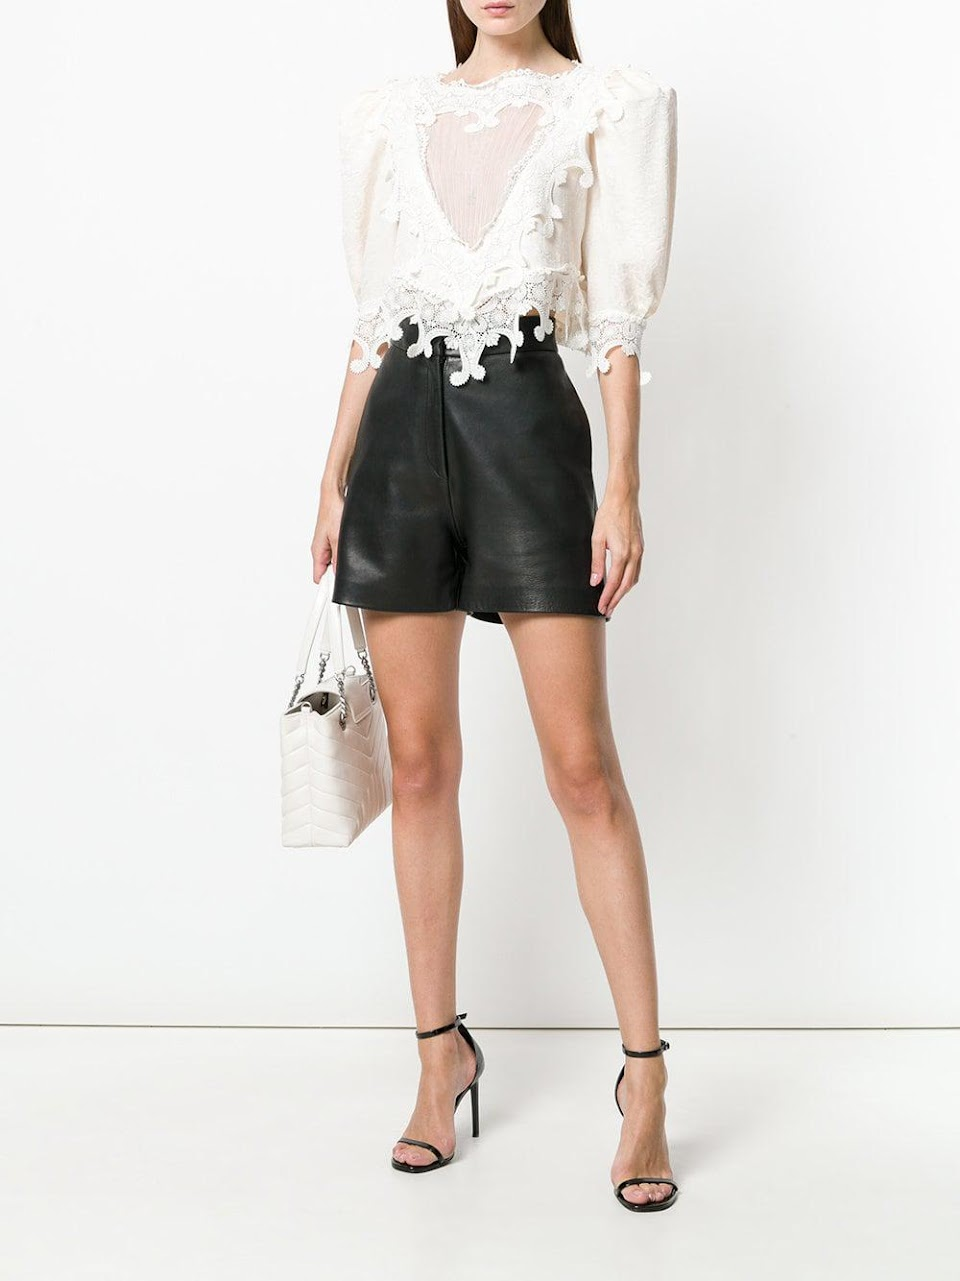 SAINT LAURENT LACE FRONT YOKE BLOUSE 4219